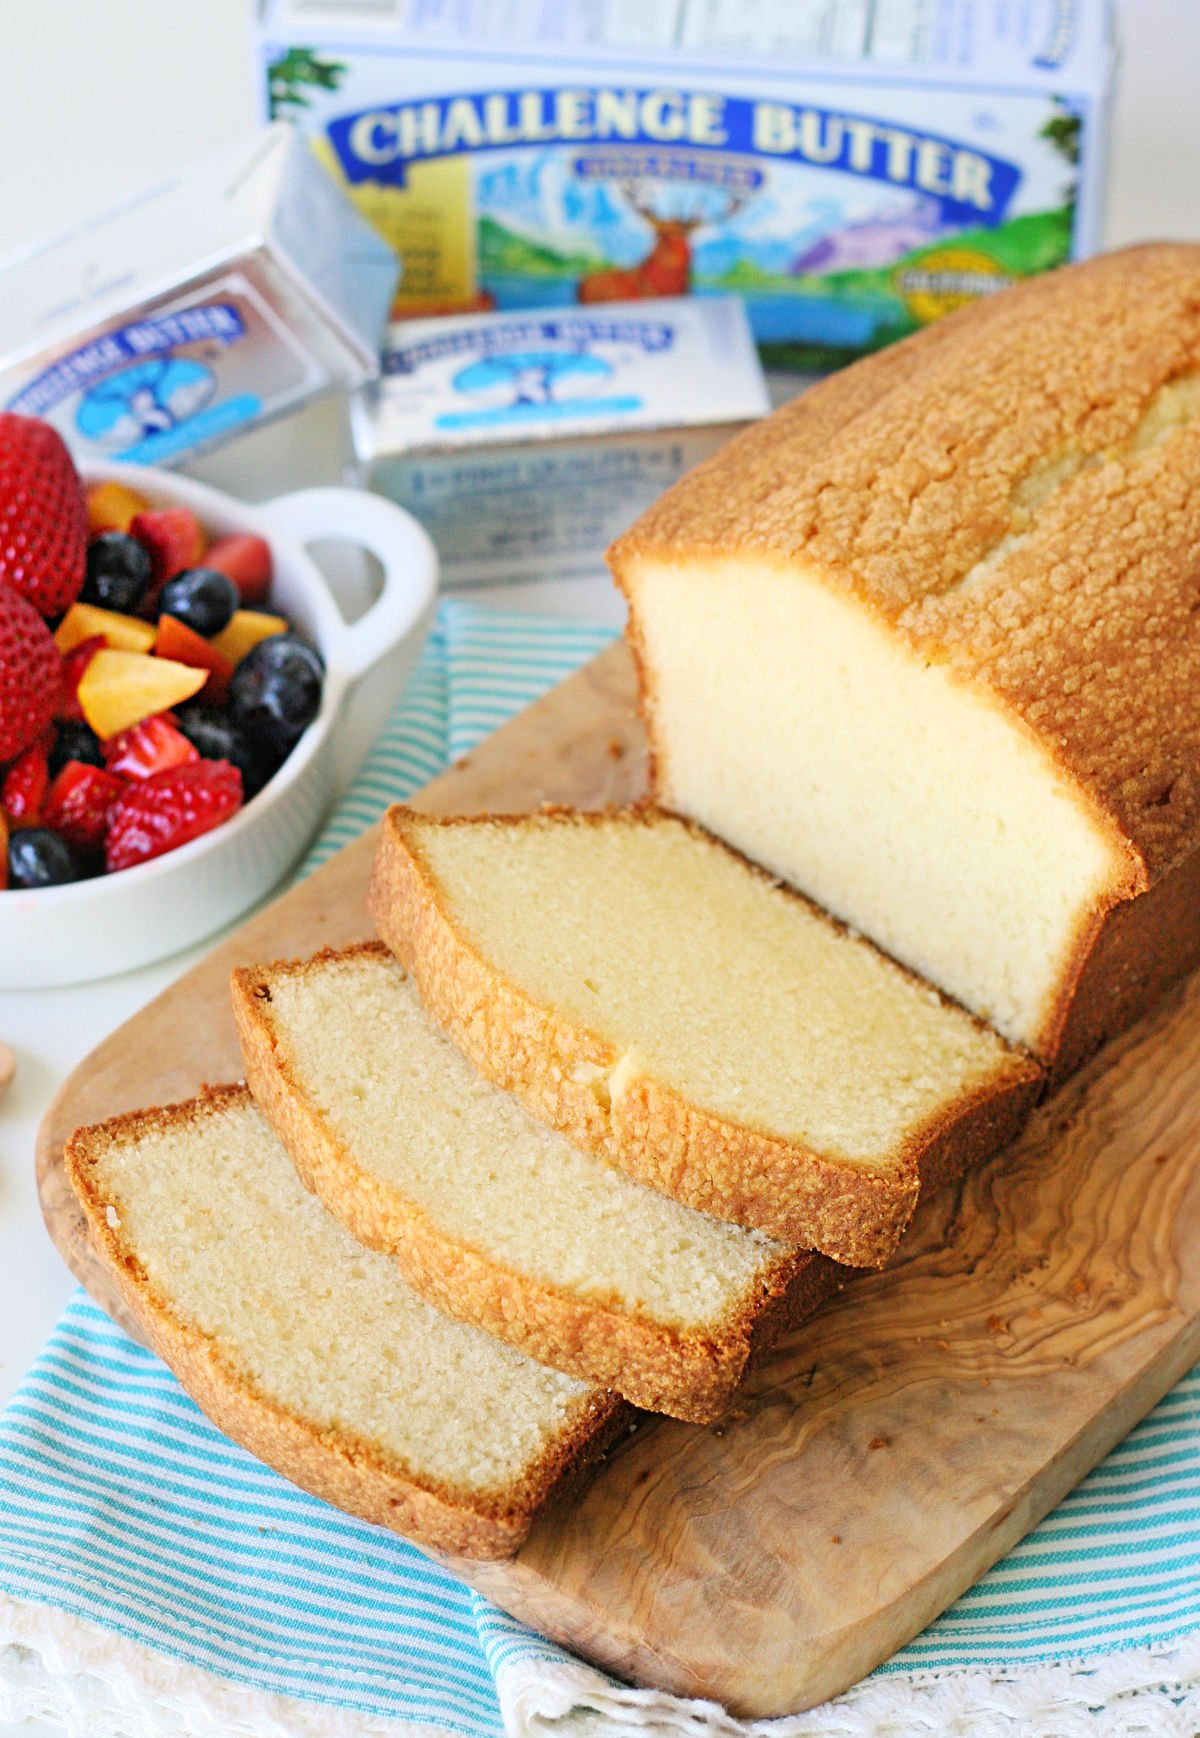 loaf pound cake on wood board with 3 slices cut sitting next to a bowl of berries.